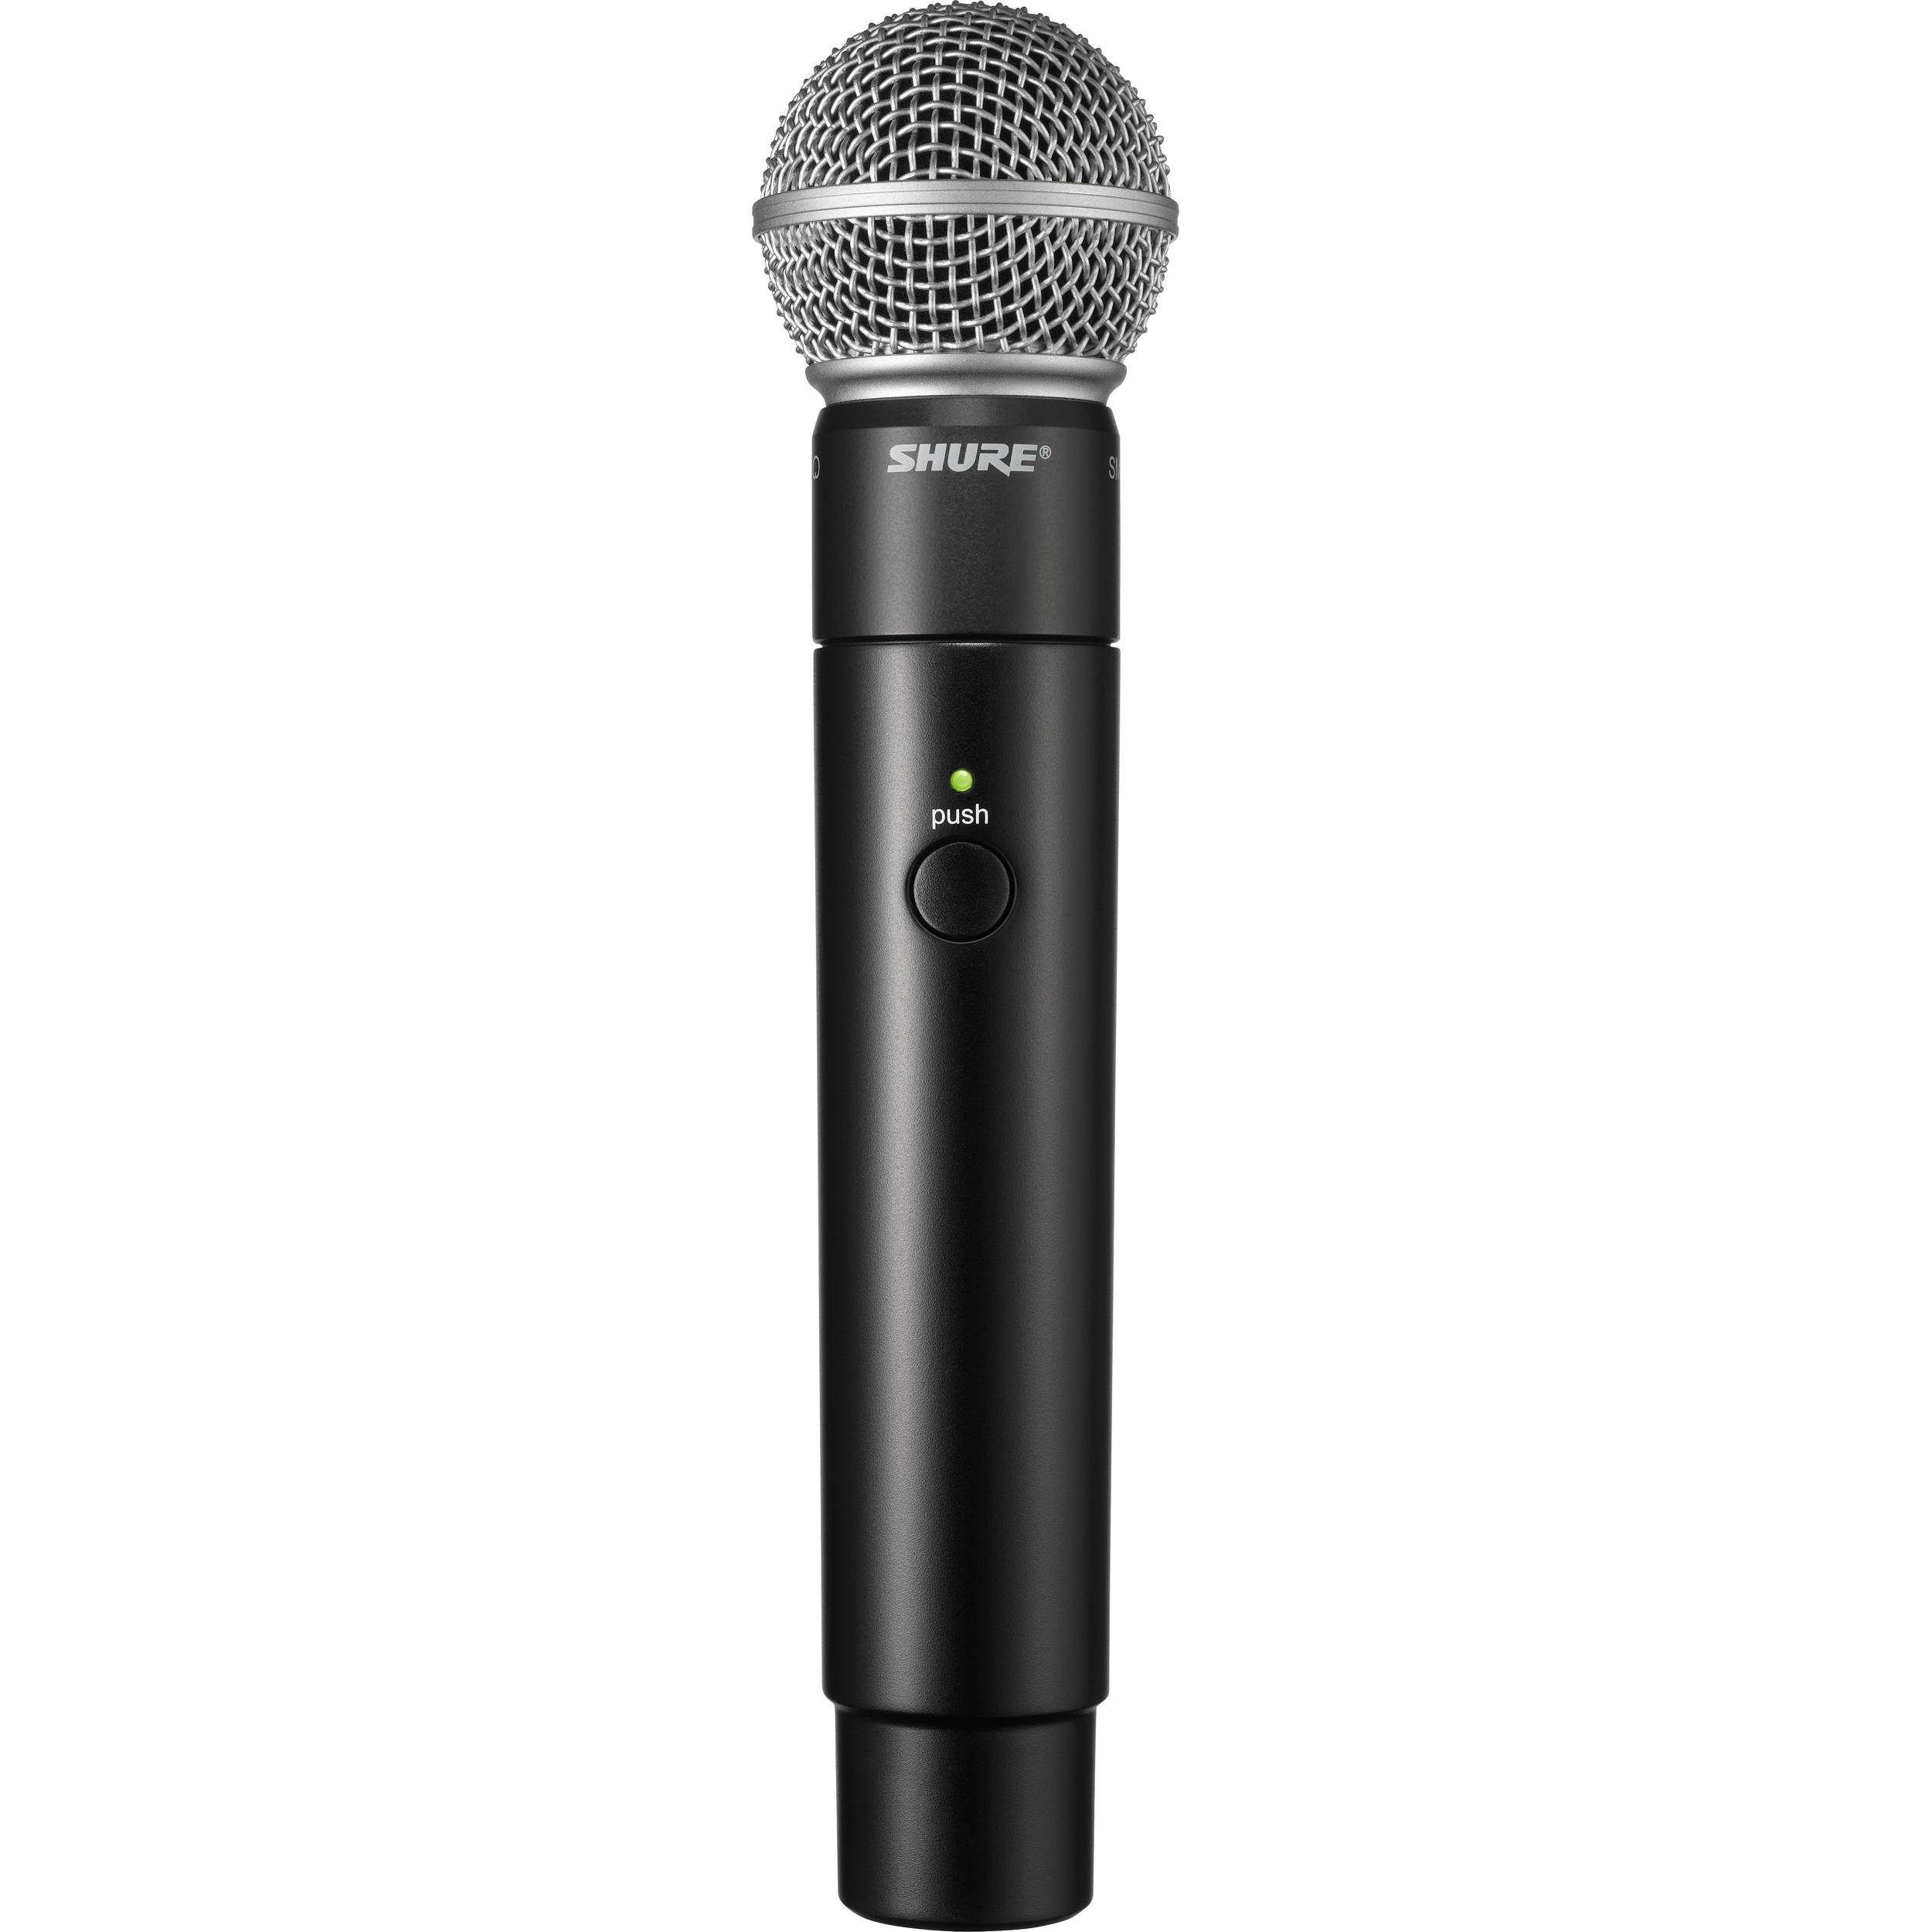 shure mxw2 handheld transmitter with sm58 microphone mxw2 sm58. Black Bedroom Furniture Sets. Home Design Ideas